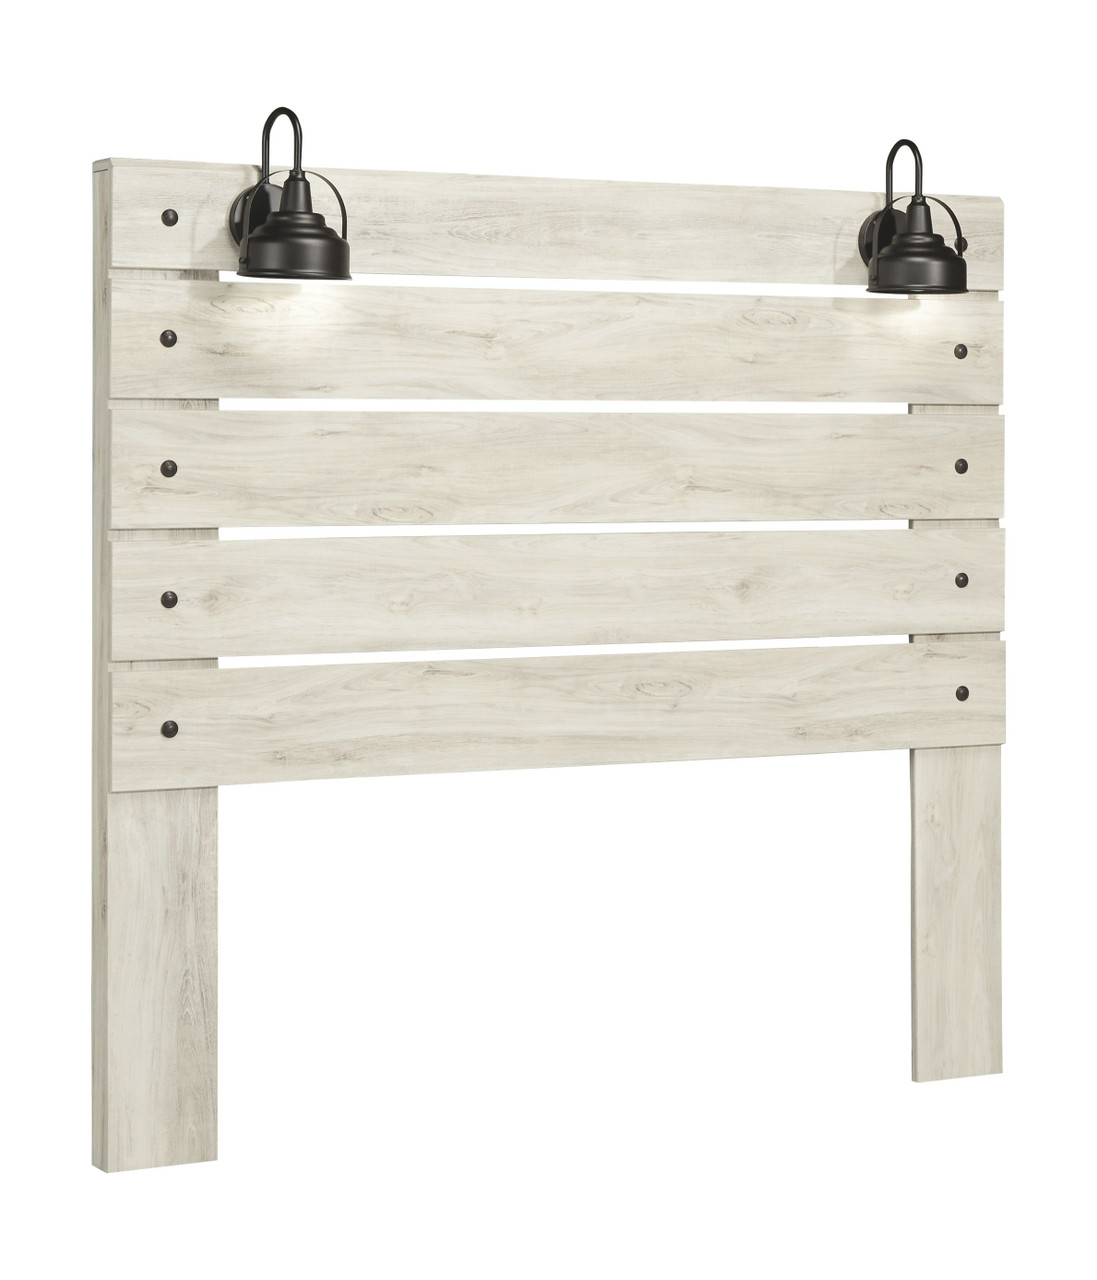 The Cambeck Whitewash Queen Panel Headboard Available At Royal Star Furniture Serving St Paul Mn